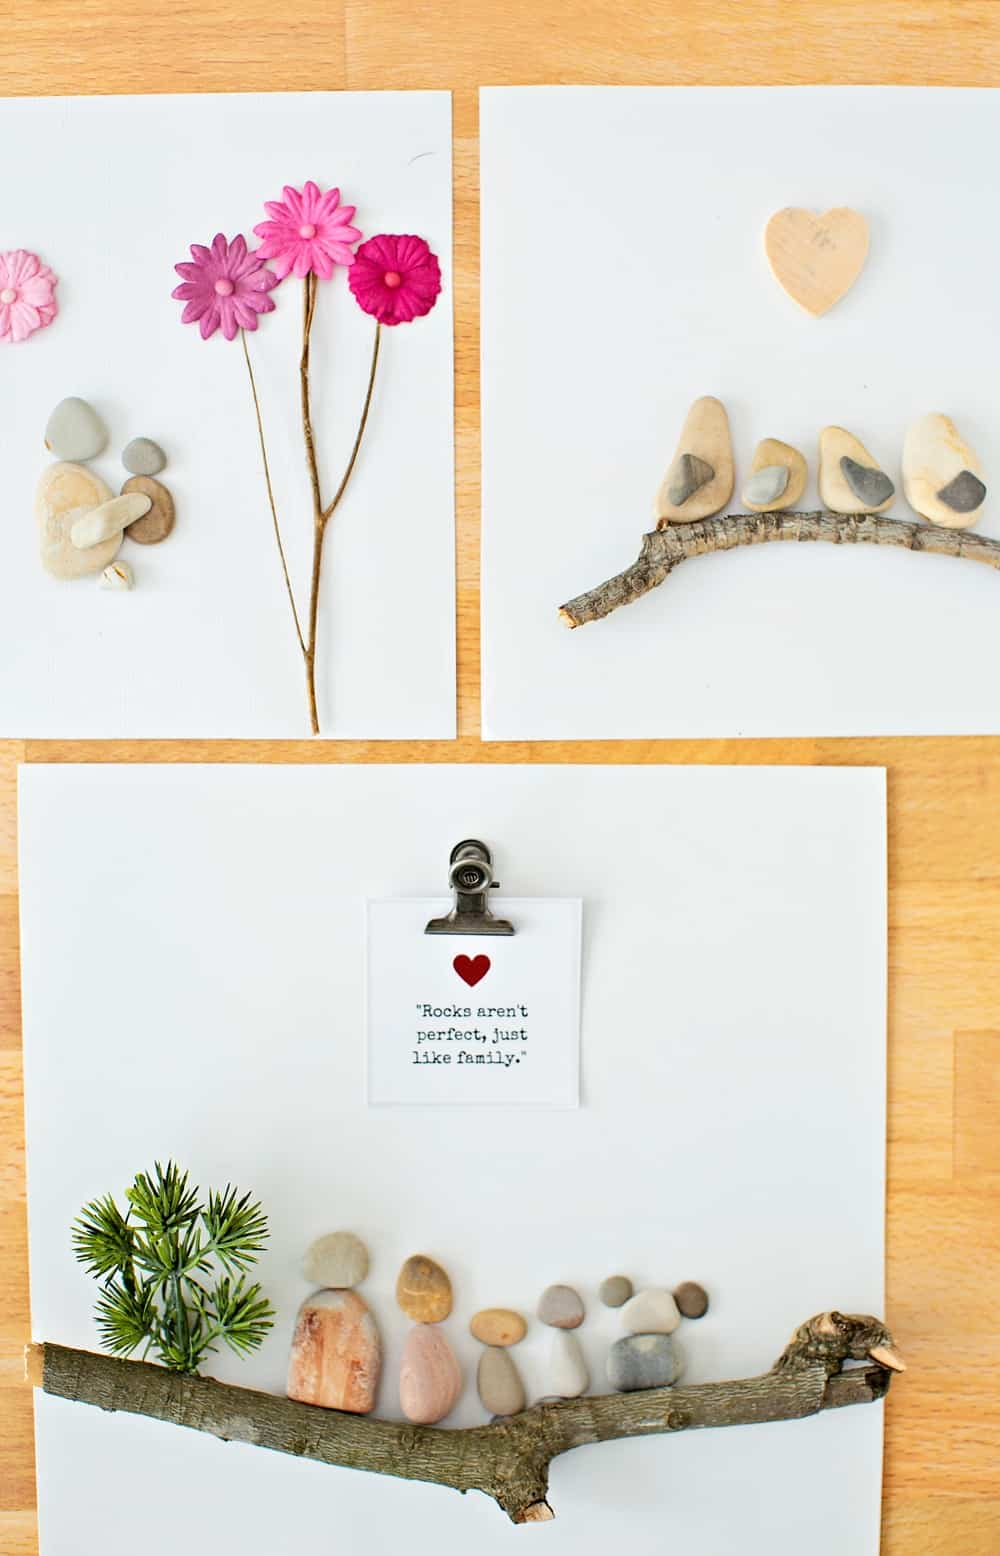 How to make pebble rock art great for handmade mother's day gift